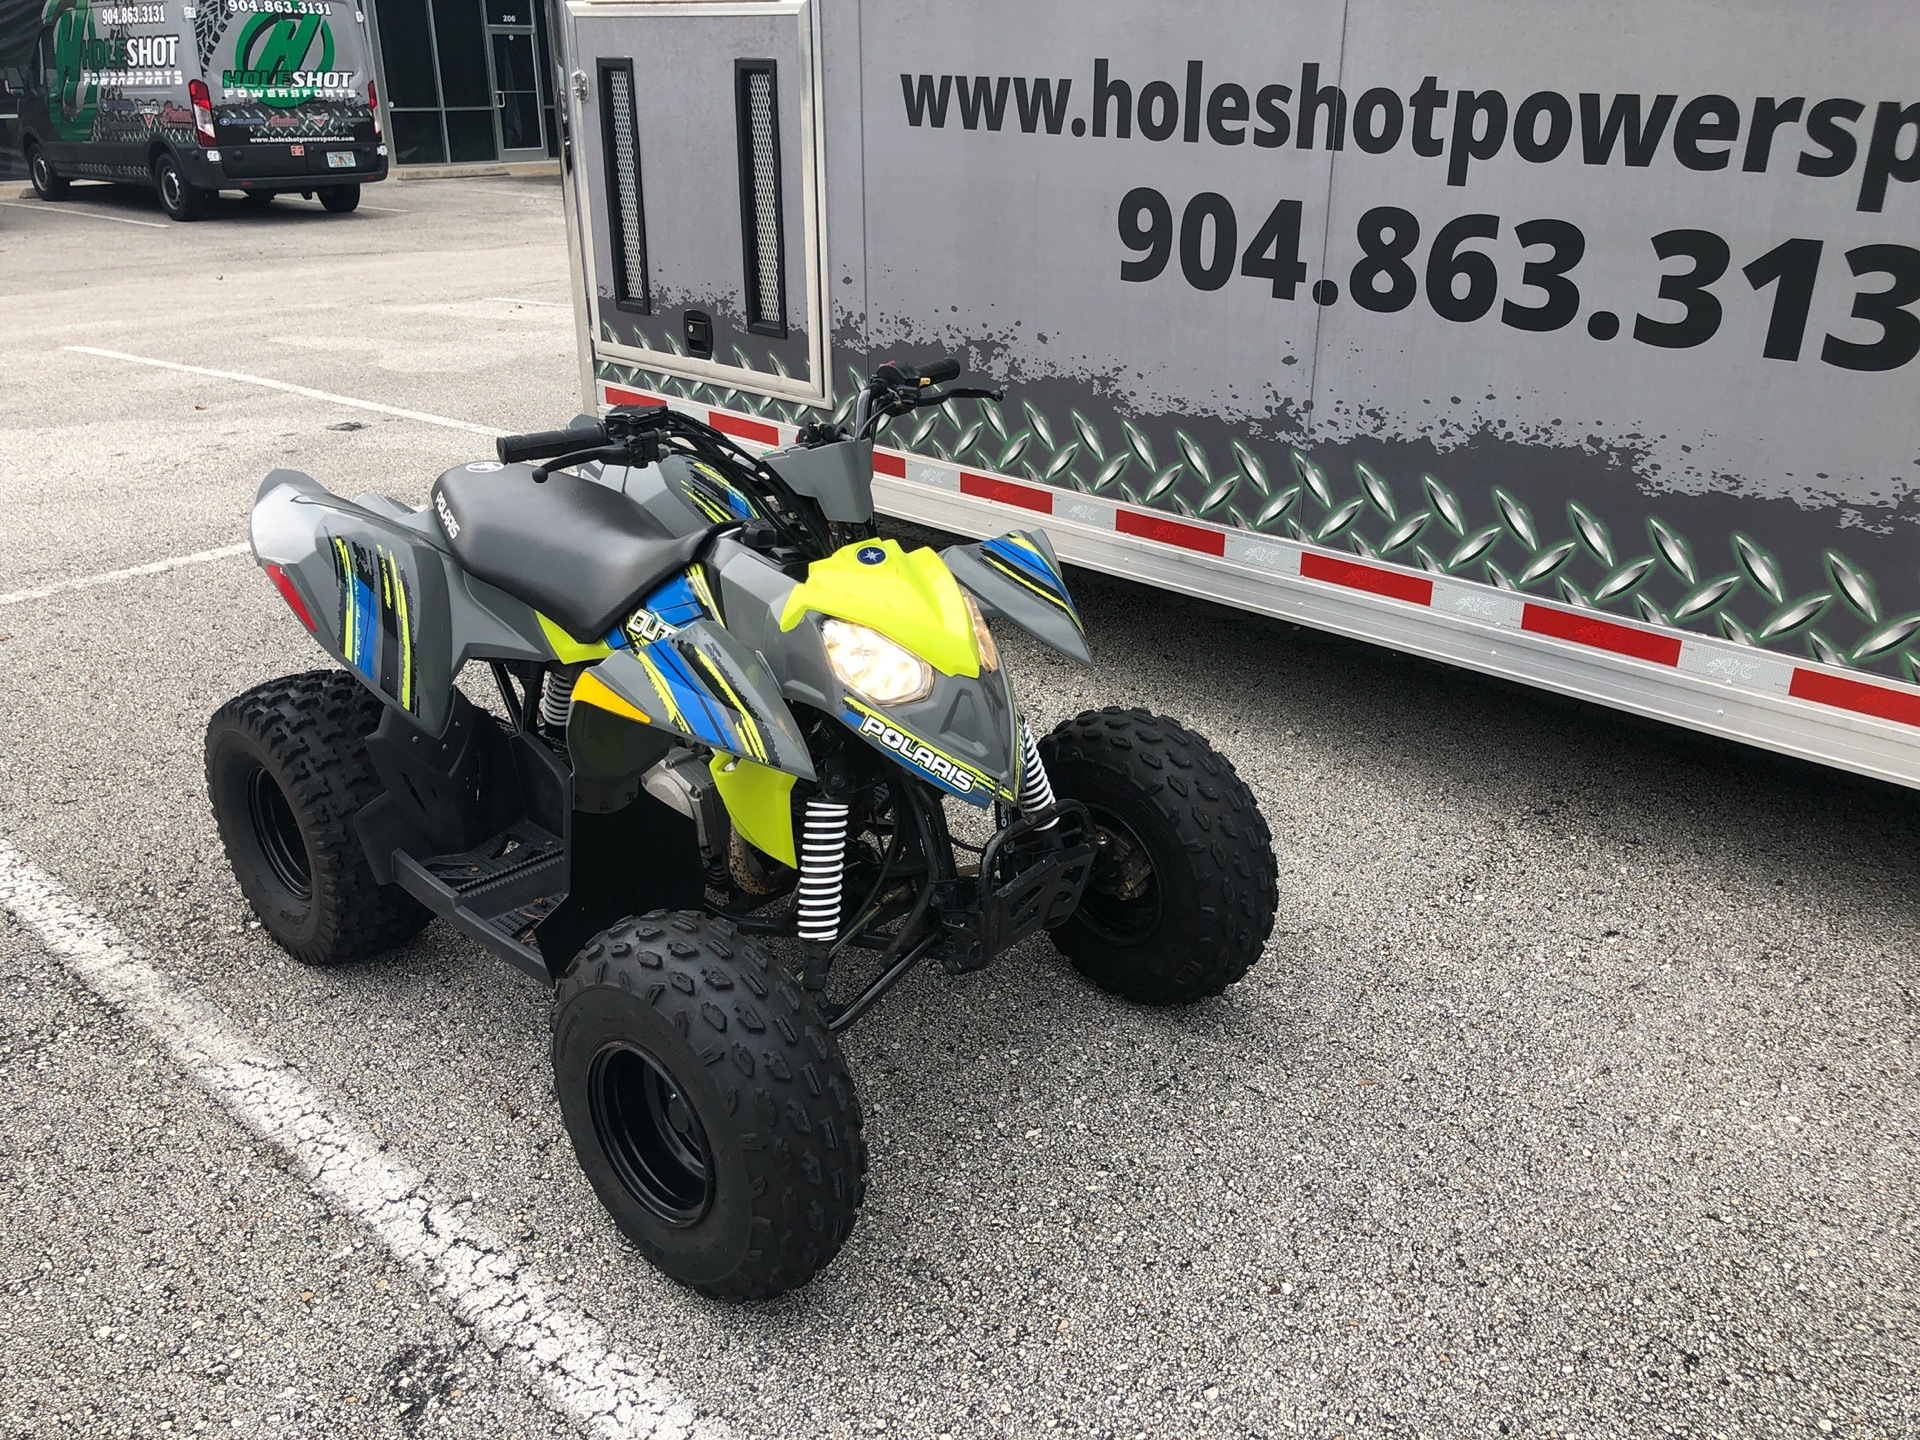 2020 Polaris Outlaw 110 in Fleming Island, Florida - Photo 2